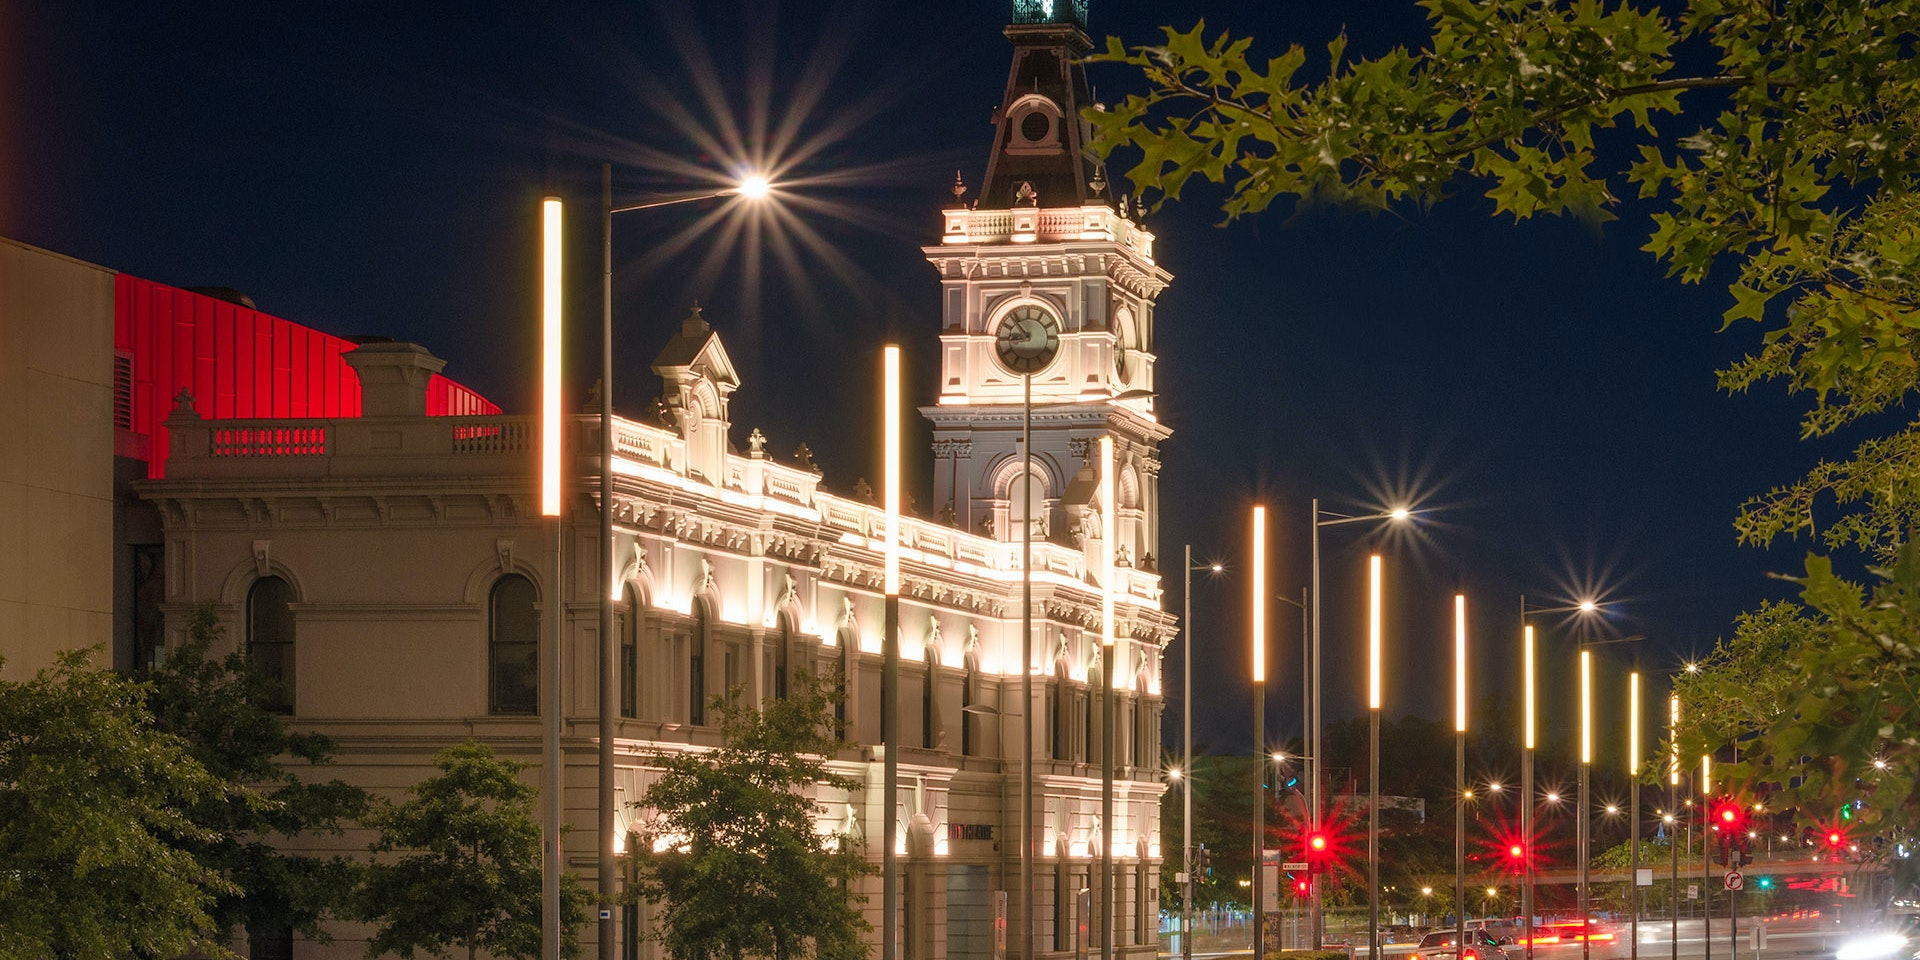 Latitude LED luminaire in application, installed on the façade of the former Dandenong Town Hall, now known as the Drum Theatre in Melbourne. Night view.